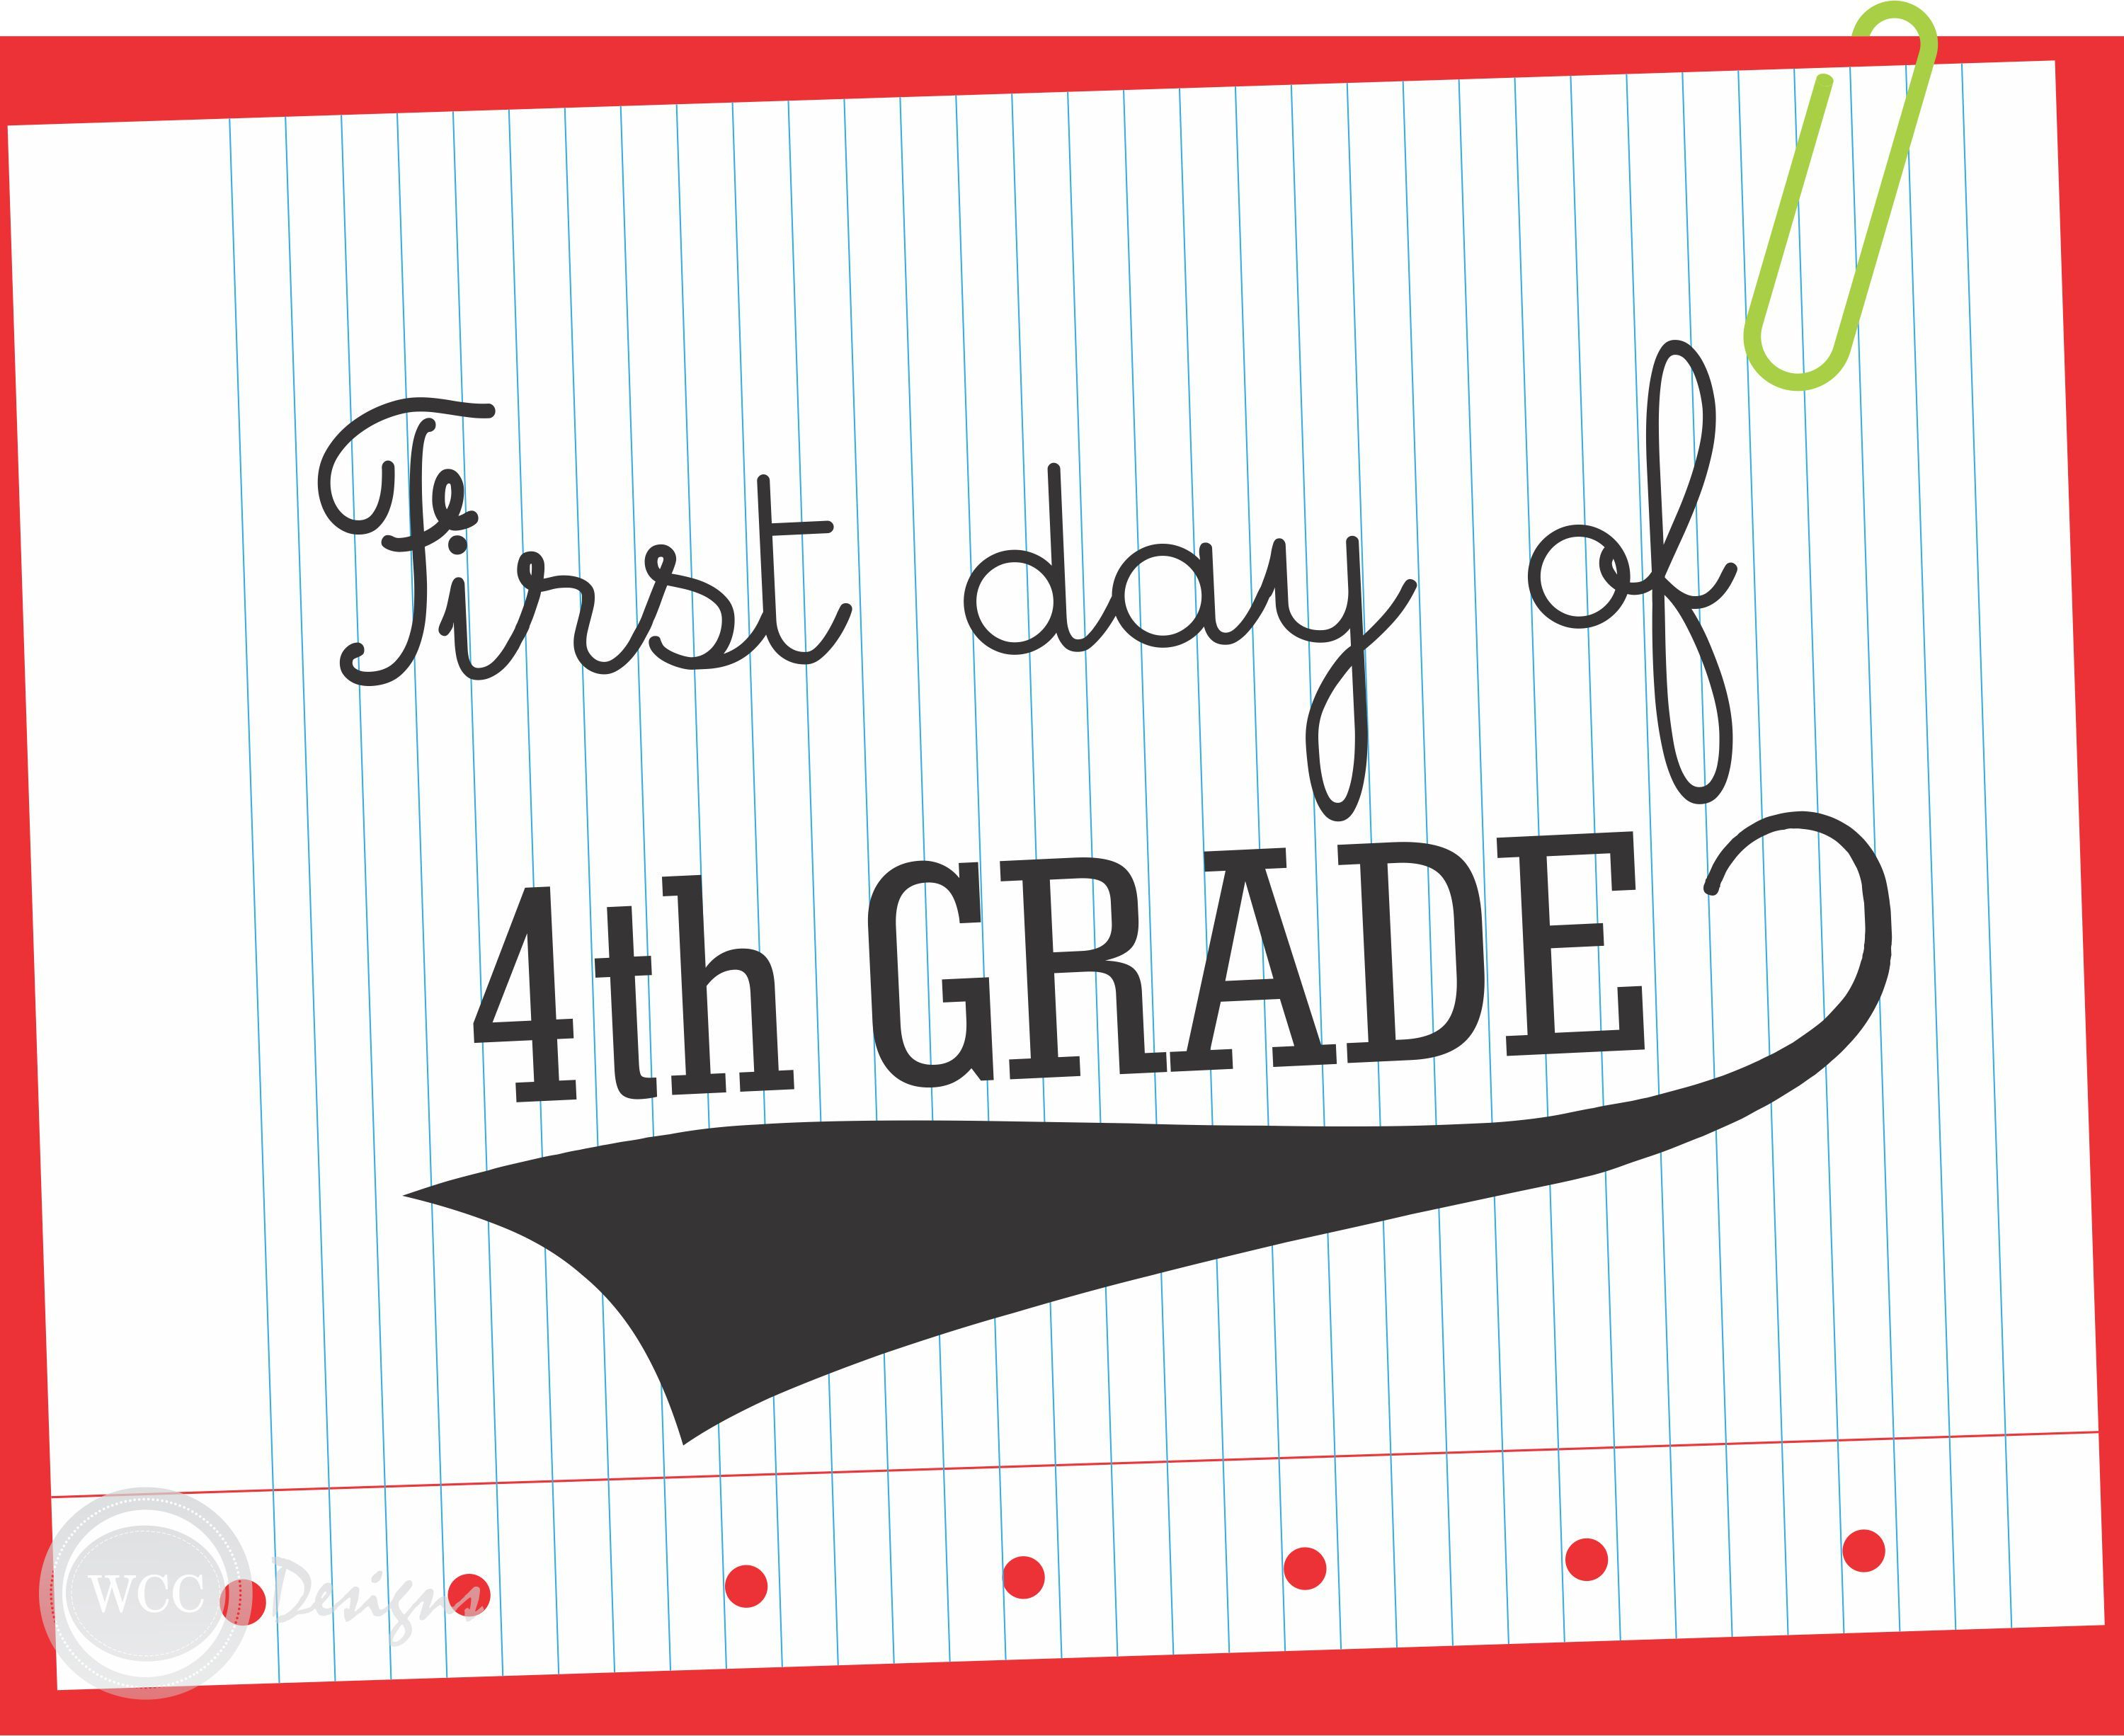 Free First Day Of School Printable Signs From Wcc Designs | Teacher - First Day Of 3Rd Grade Free Printable